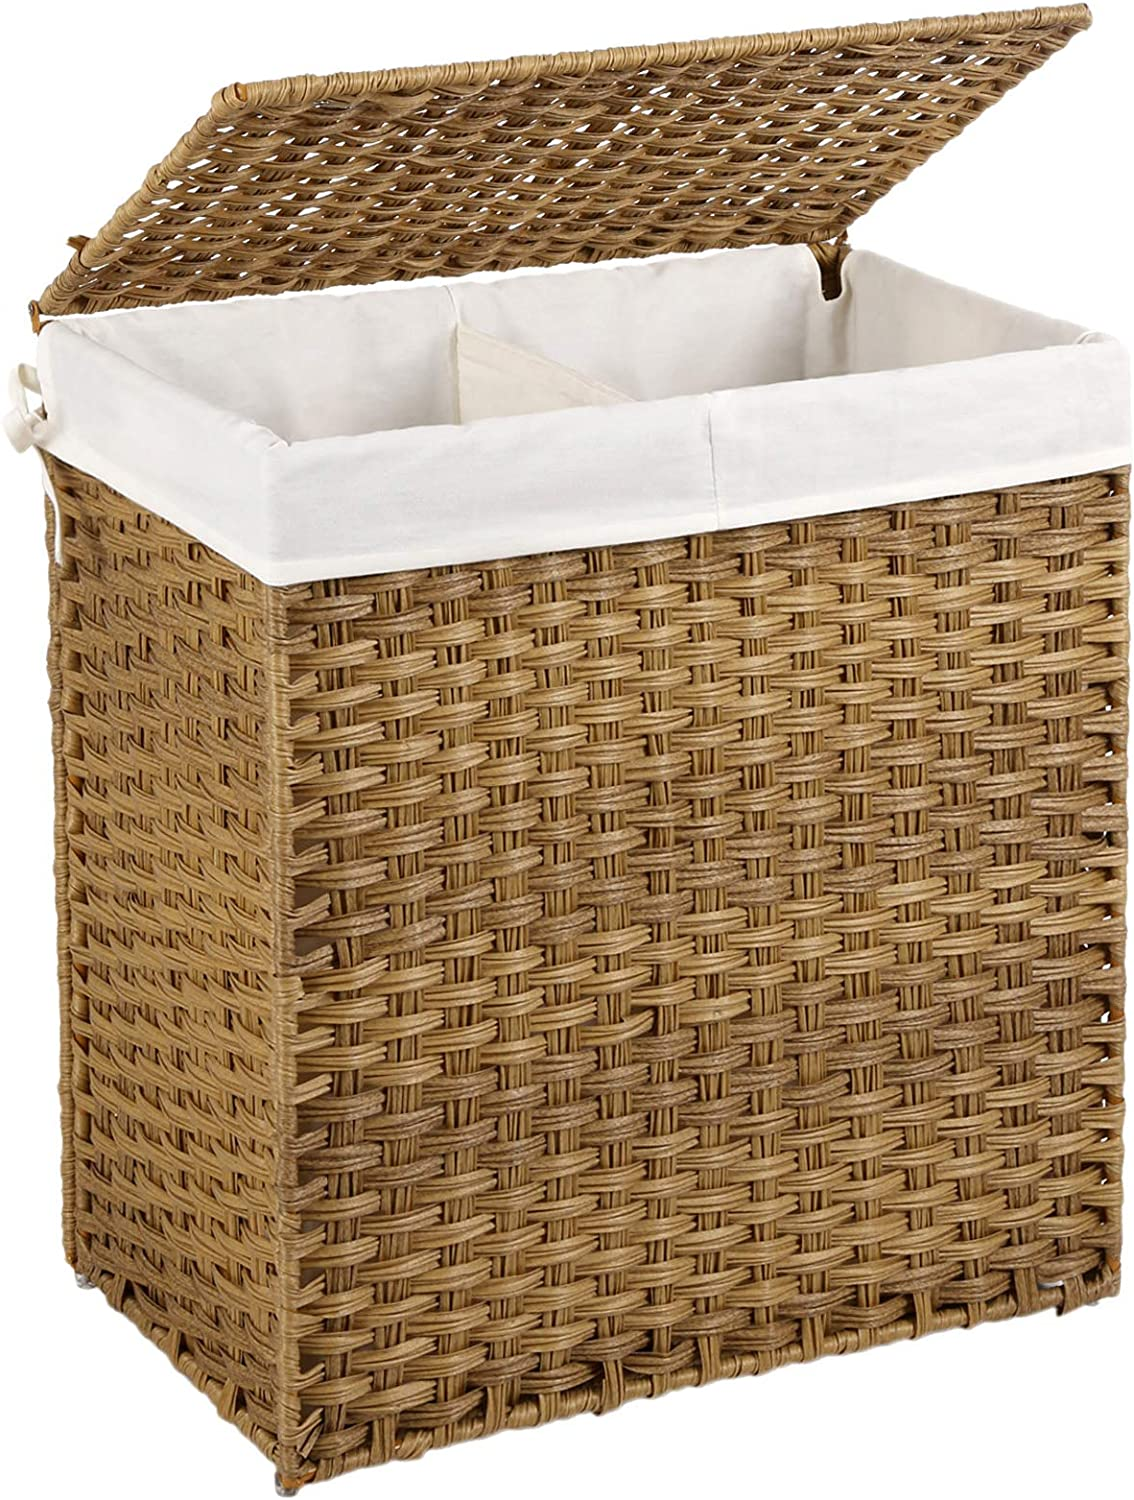 SONGMICS Handwoven Laundry Basket, 110L Synthetic Rattan Divided Clothes Hamper with Lid and Handles, Foldable, Removable Liner Bag, Natural LCB52NL